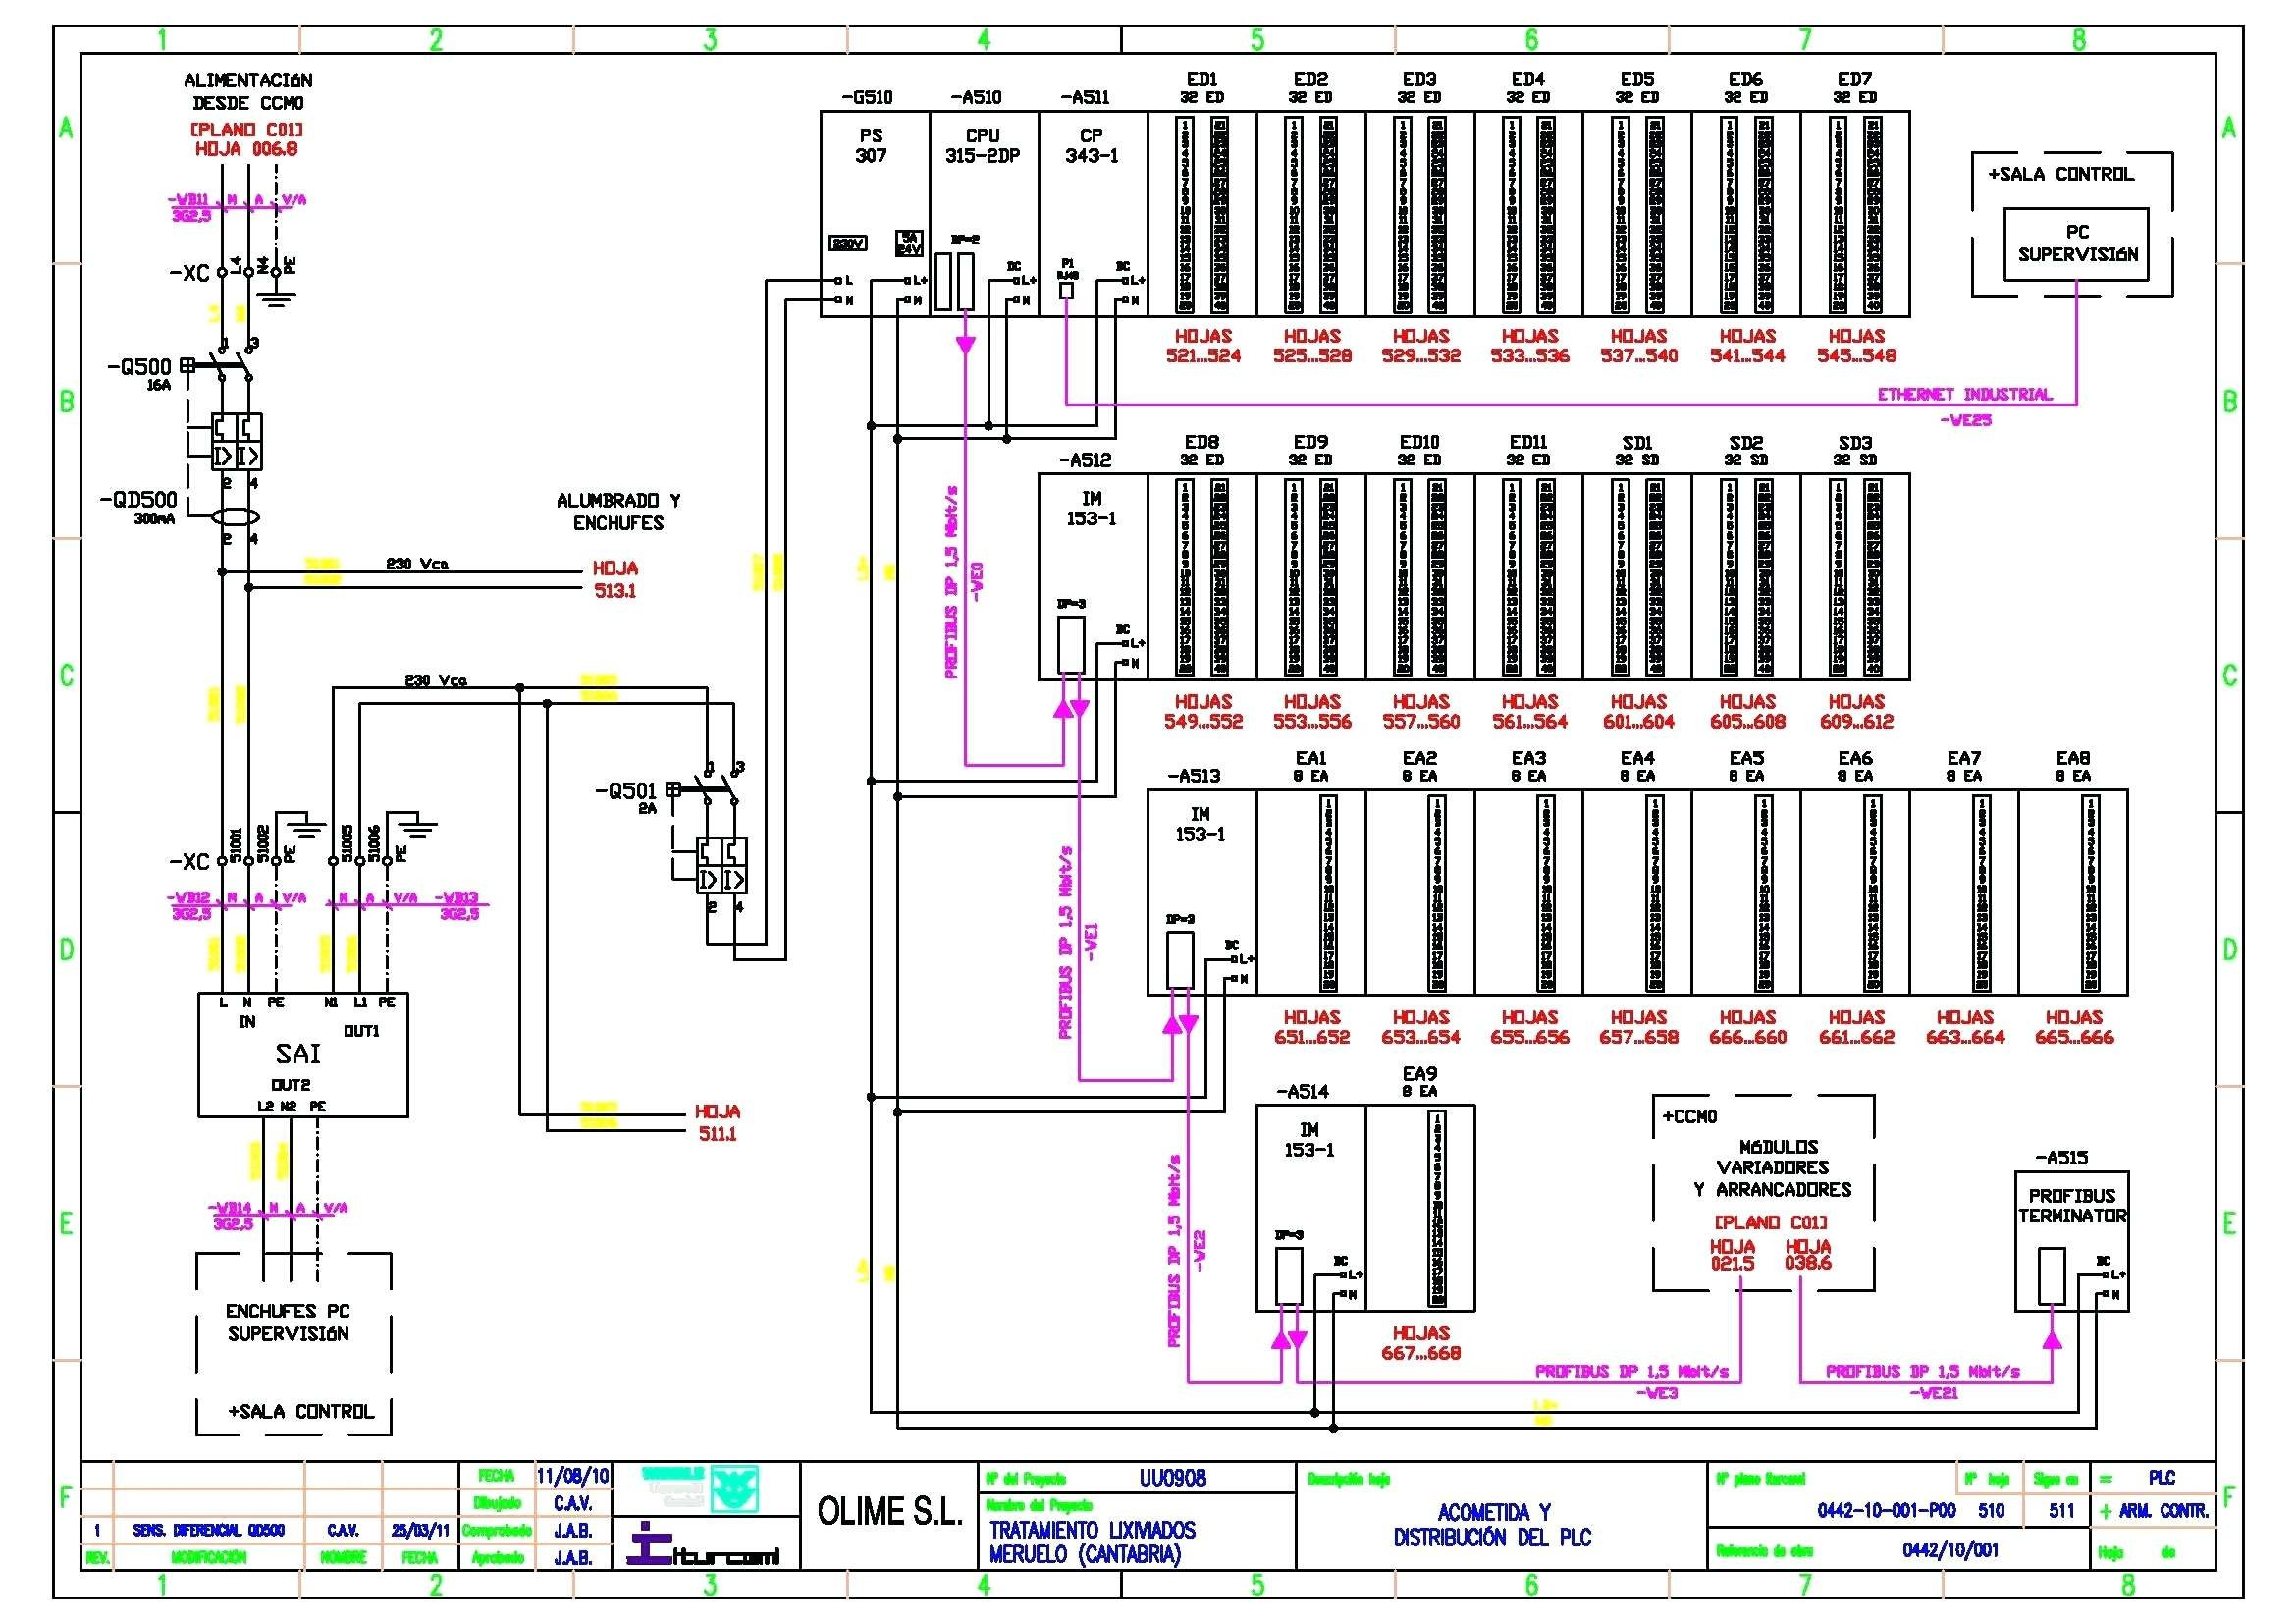 rv distribution panel wiring diagram Download-Wiring Diagram Distribution Board New Rv Distribution Panel Wiring Diagram How to Wire Safety Switch 20-a